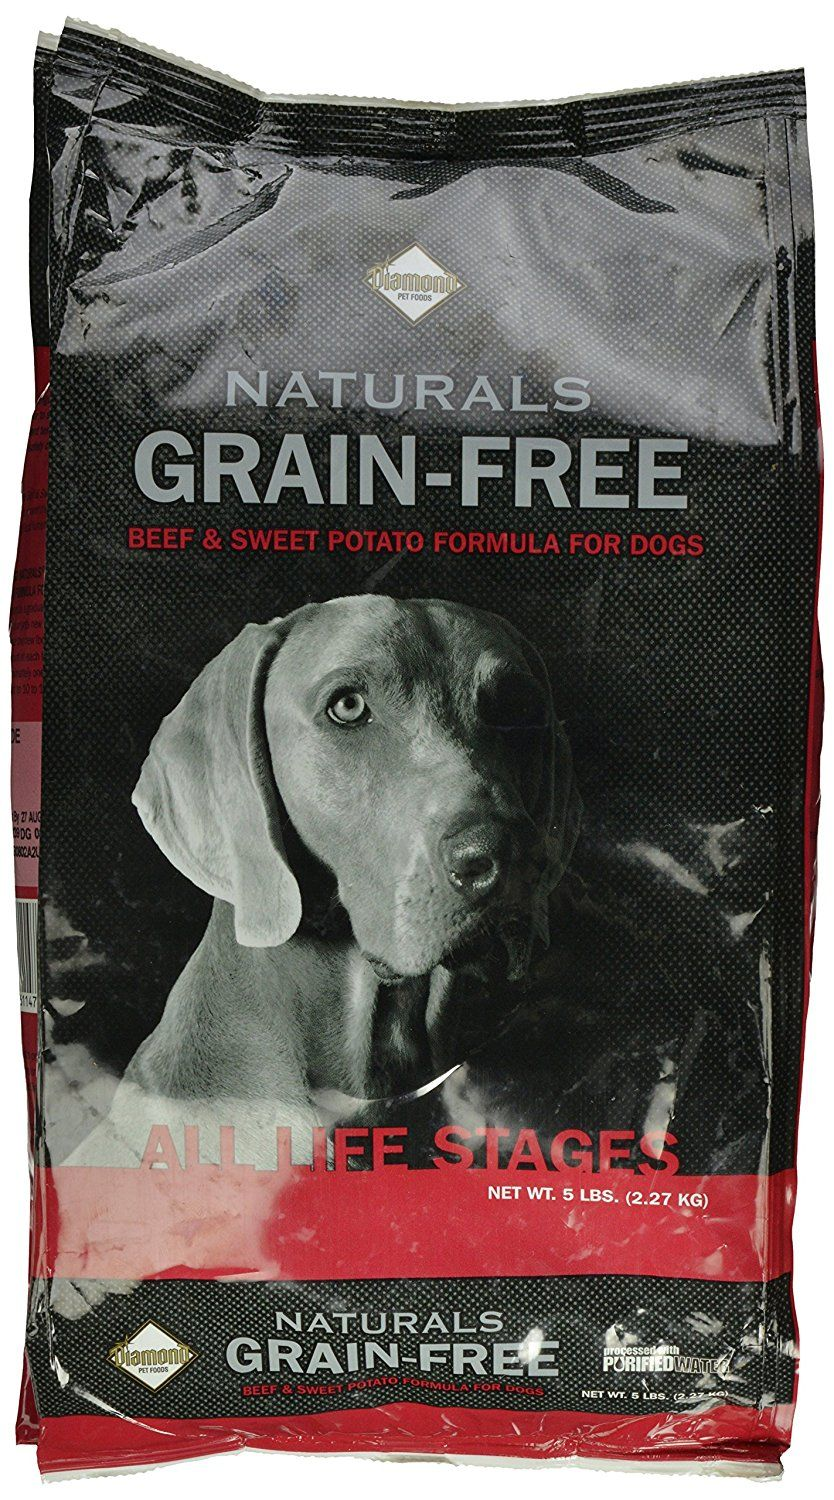 Diamond naturals grain free beef and sweet potato for dogs